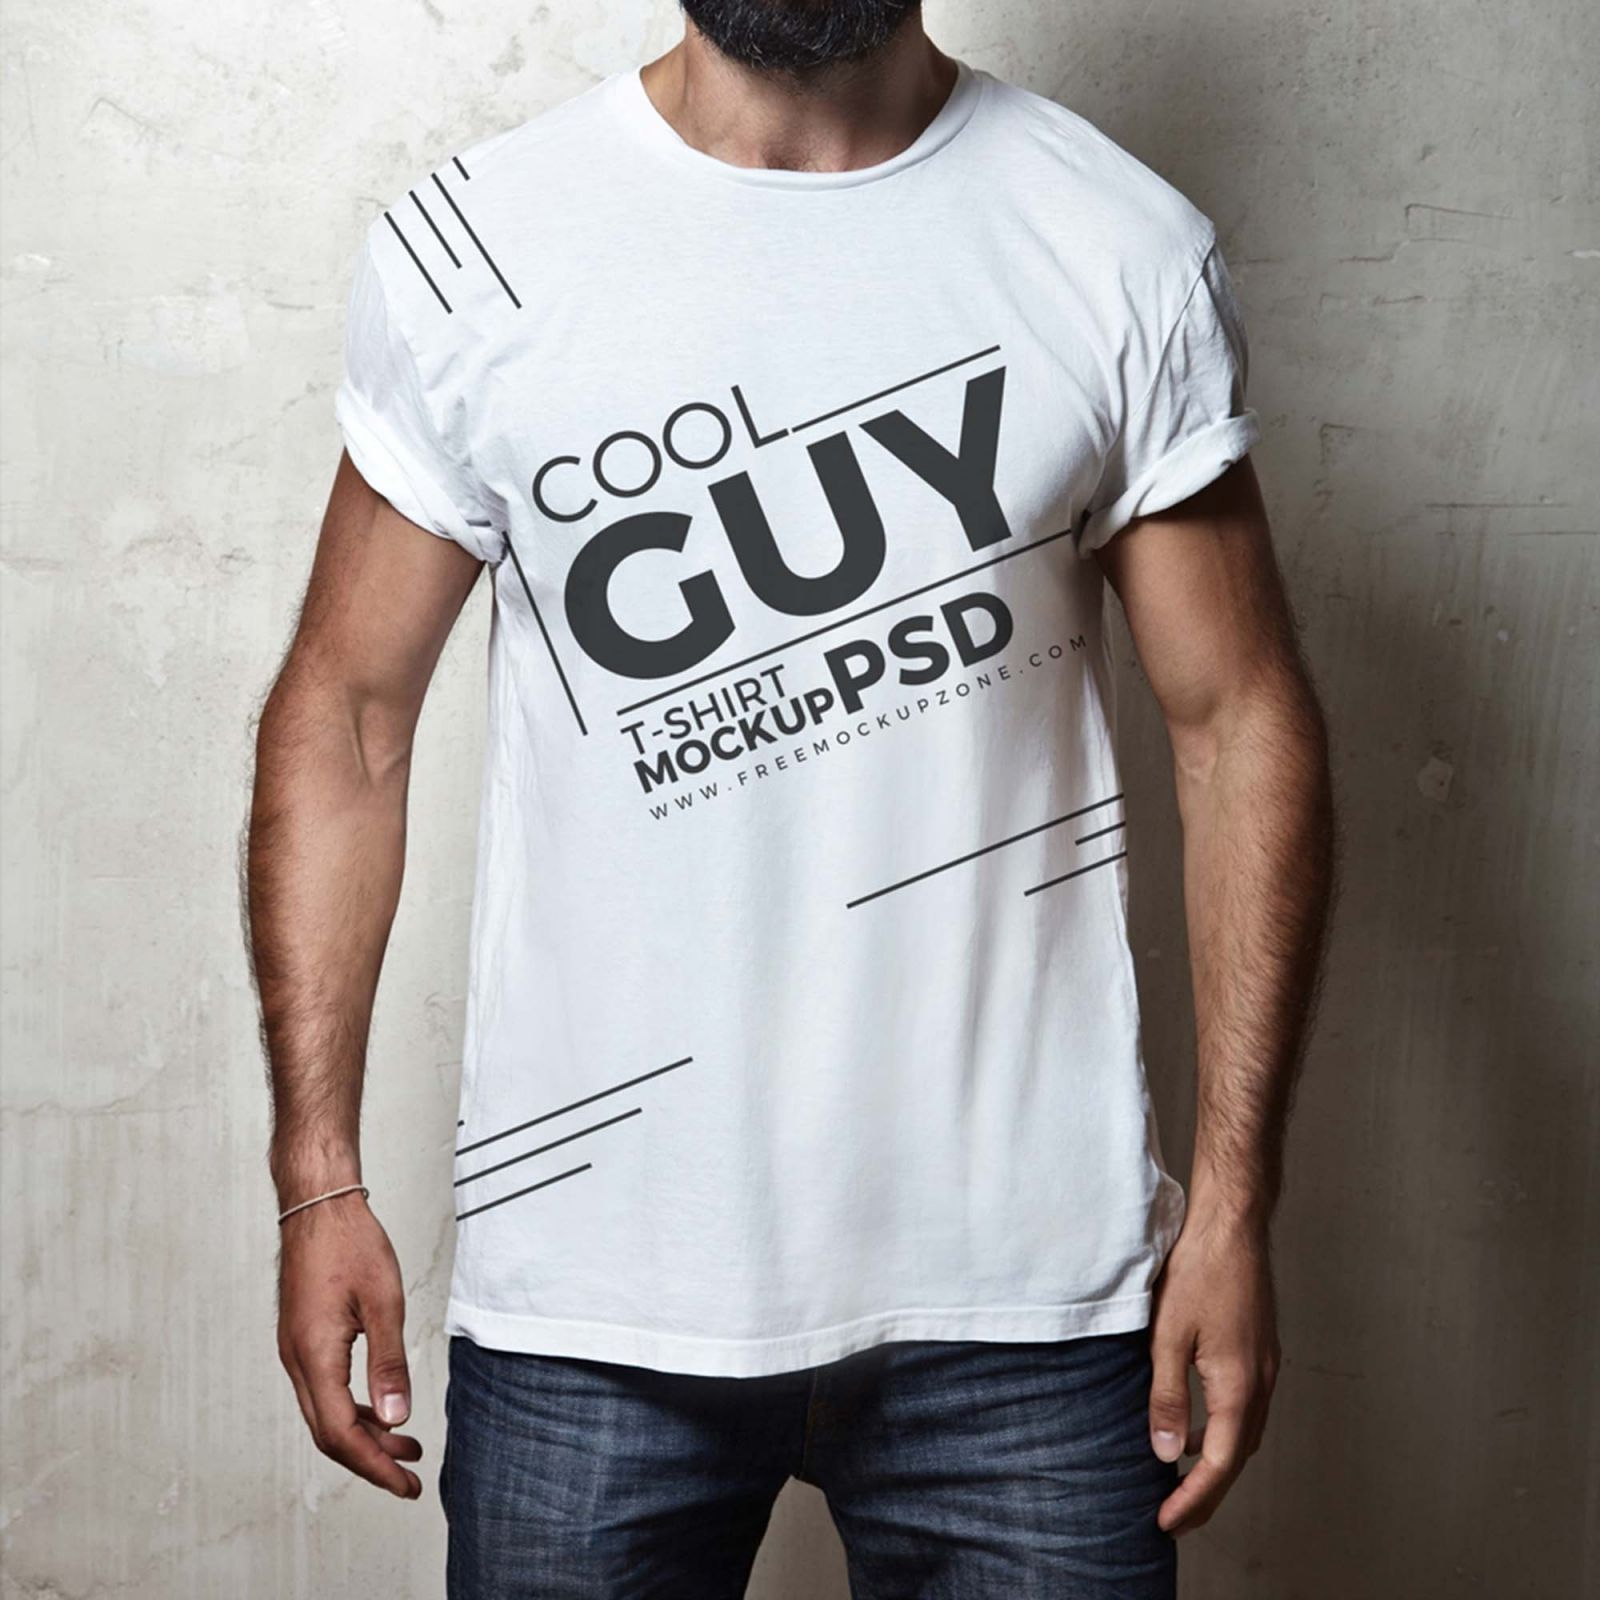 Download Free Male T Shirt Mockup Fashion Meets Usefulness Tshirt Mockup Fashion Tshirt Mockup Shirt Mockup T Shirt